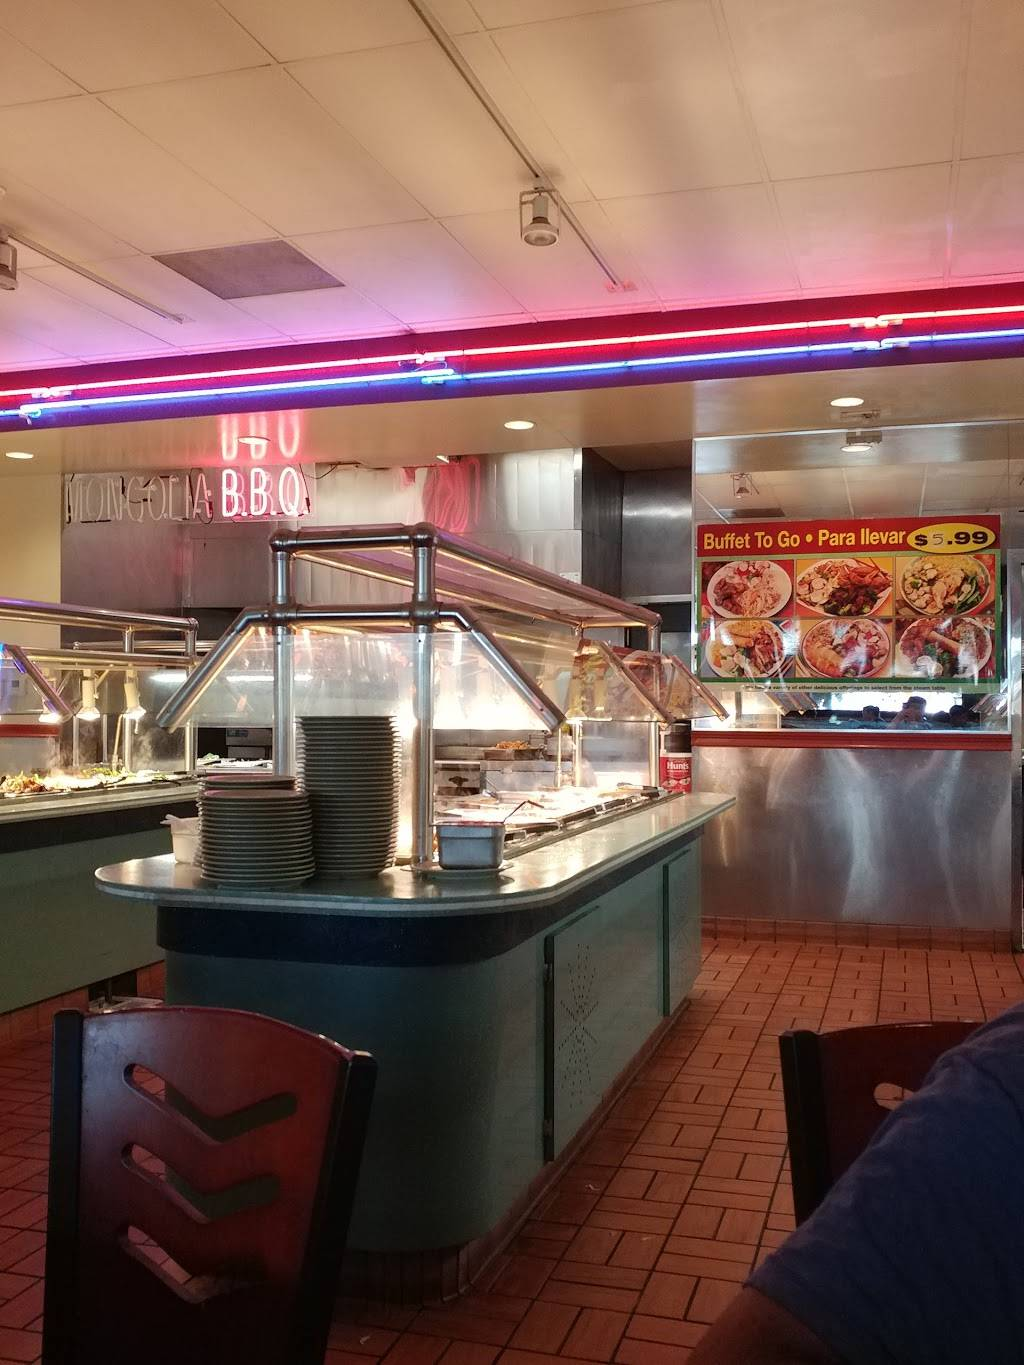 Admirable New World Buffet Restaurant 1419 E Gage Ave Los Angeles Download Free Architecture Designs Scobabritishbridgeorg